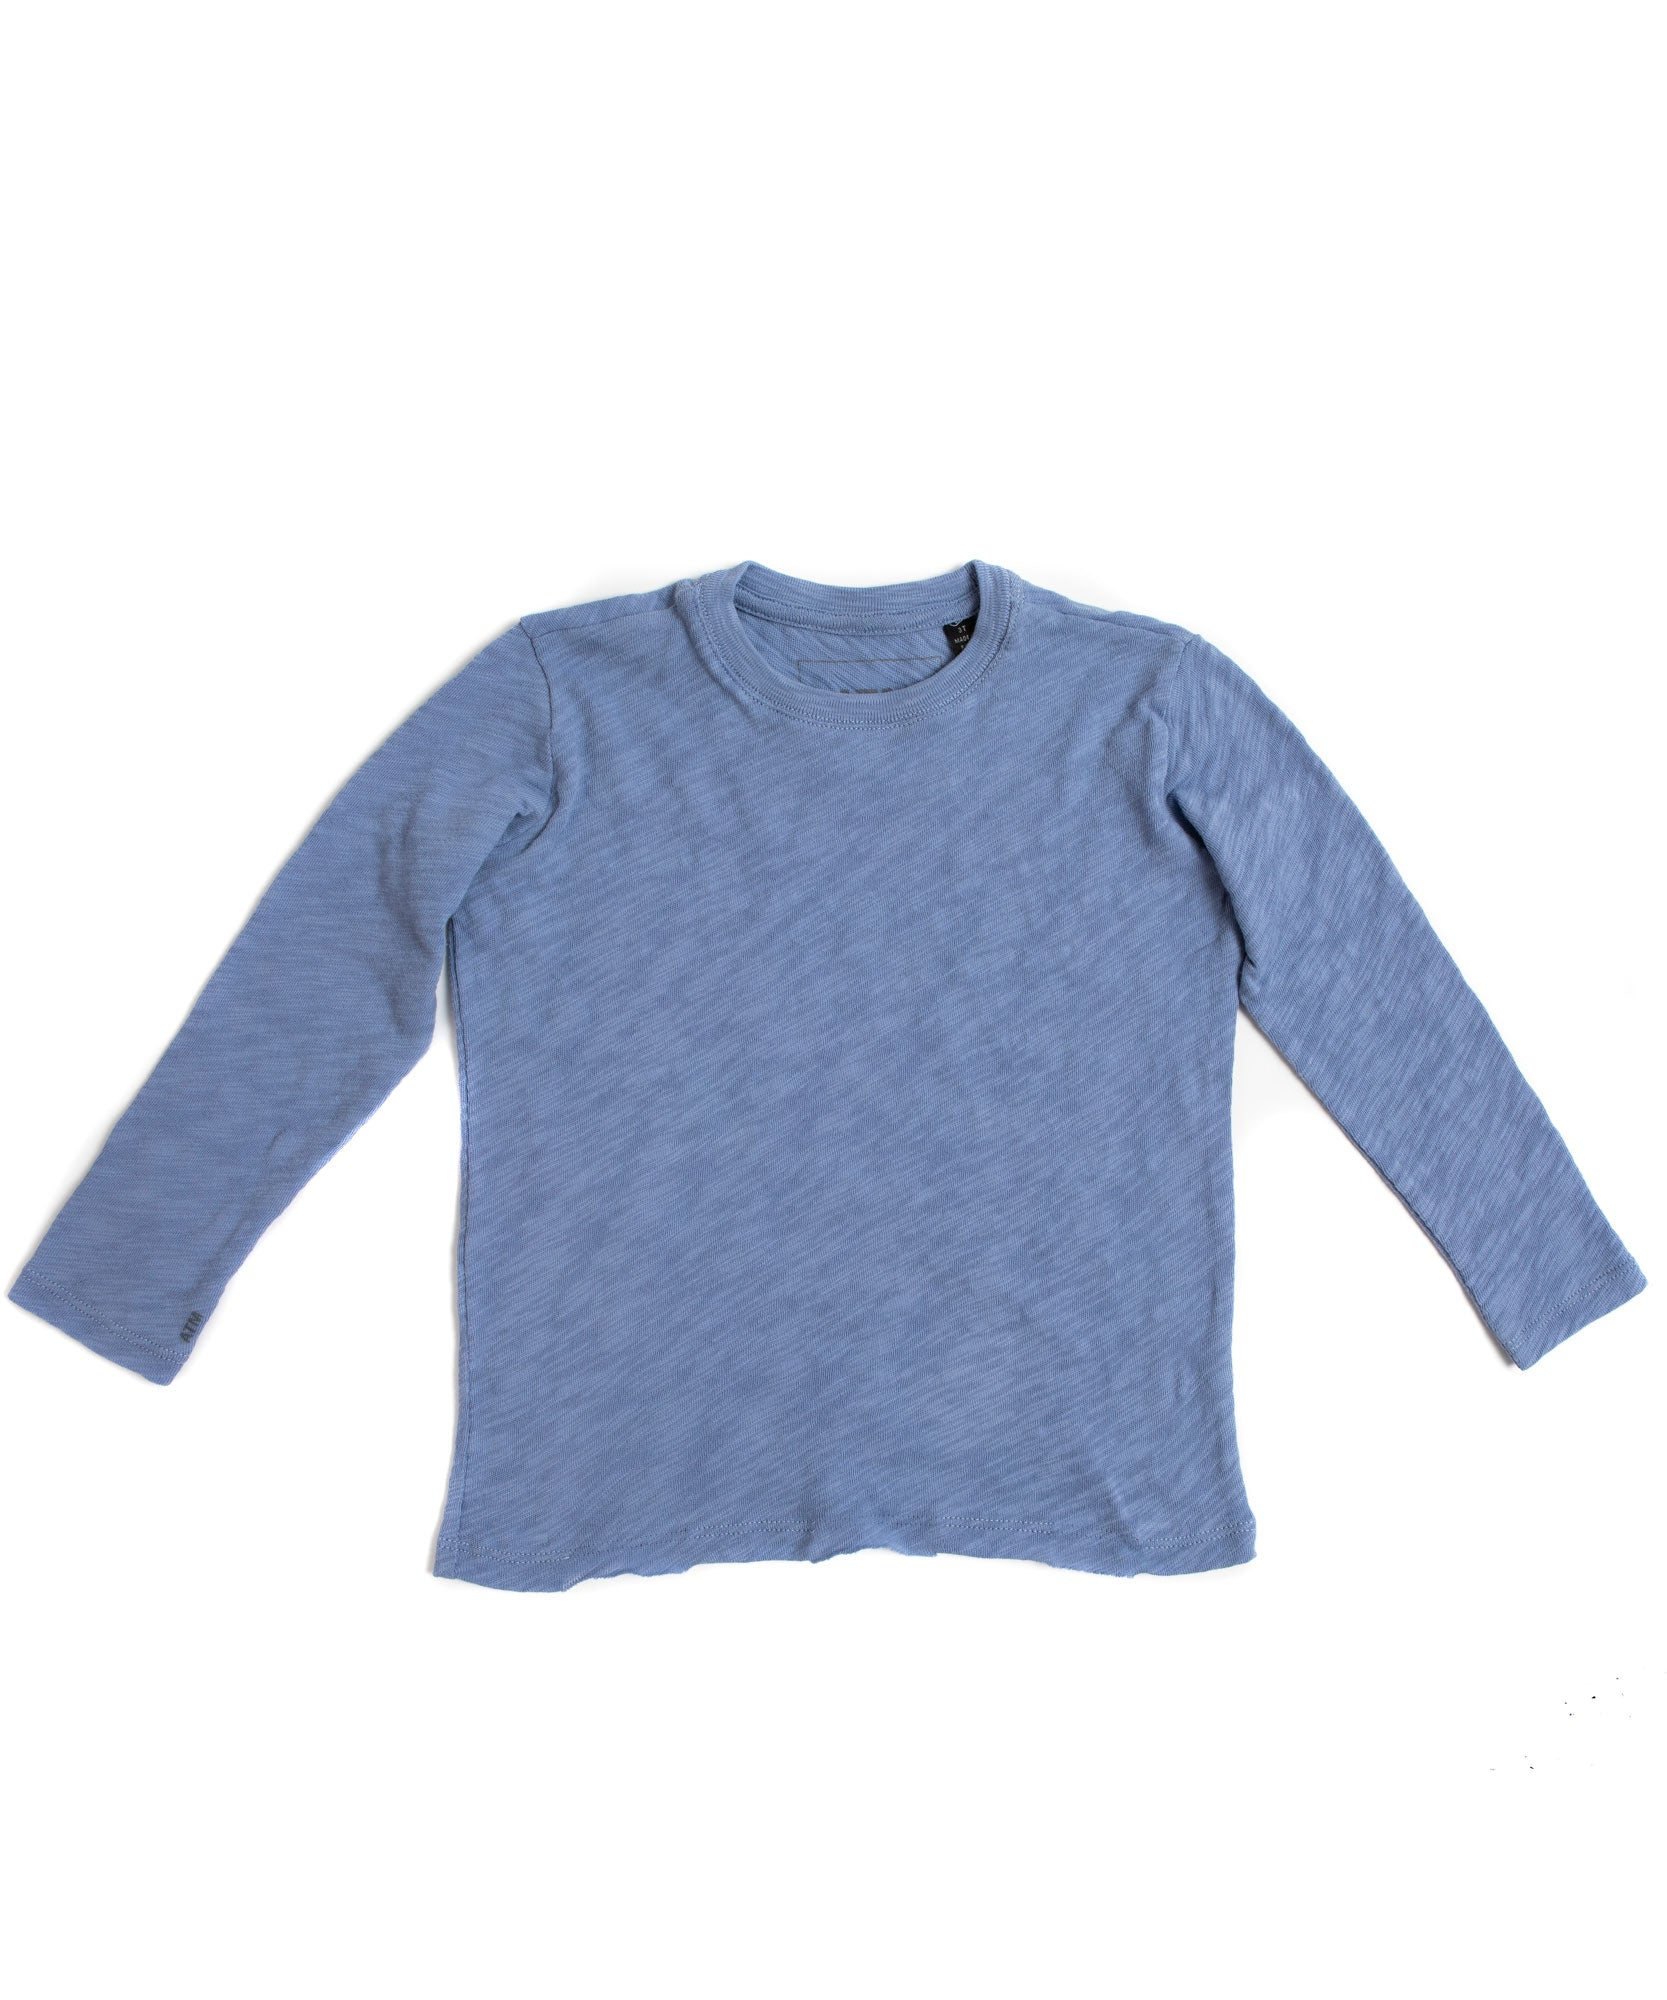 English Blue Kids Slub Jersey Long Sleeve Tee -  Kid's Cotton Long Sleeve Tee by ATM Anthony Thomas Melillo